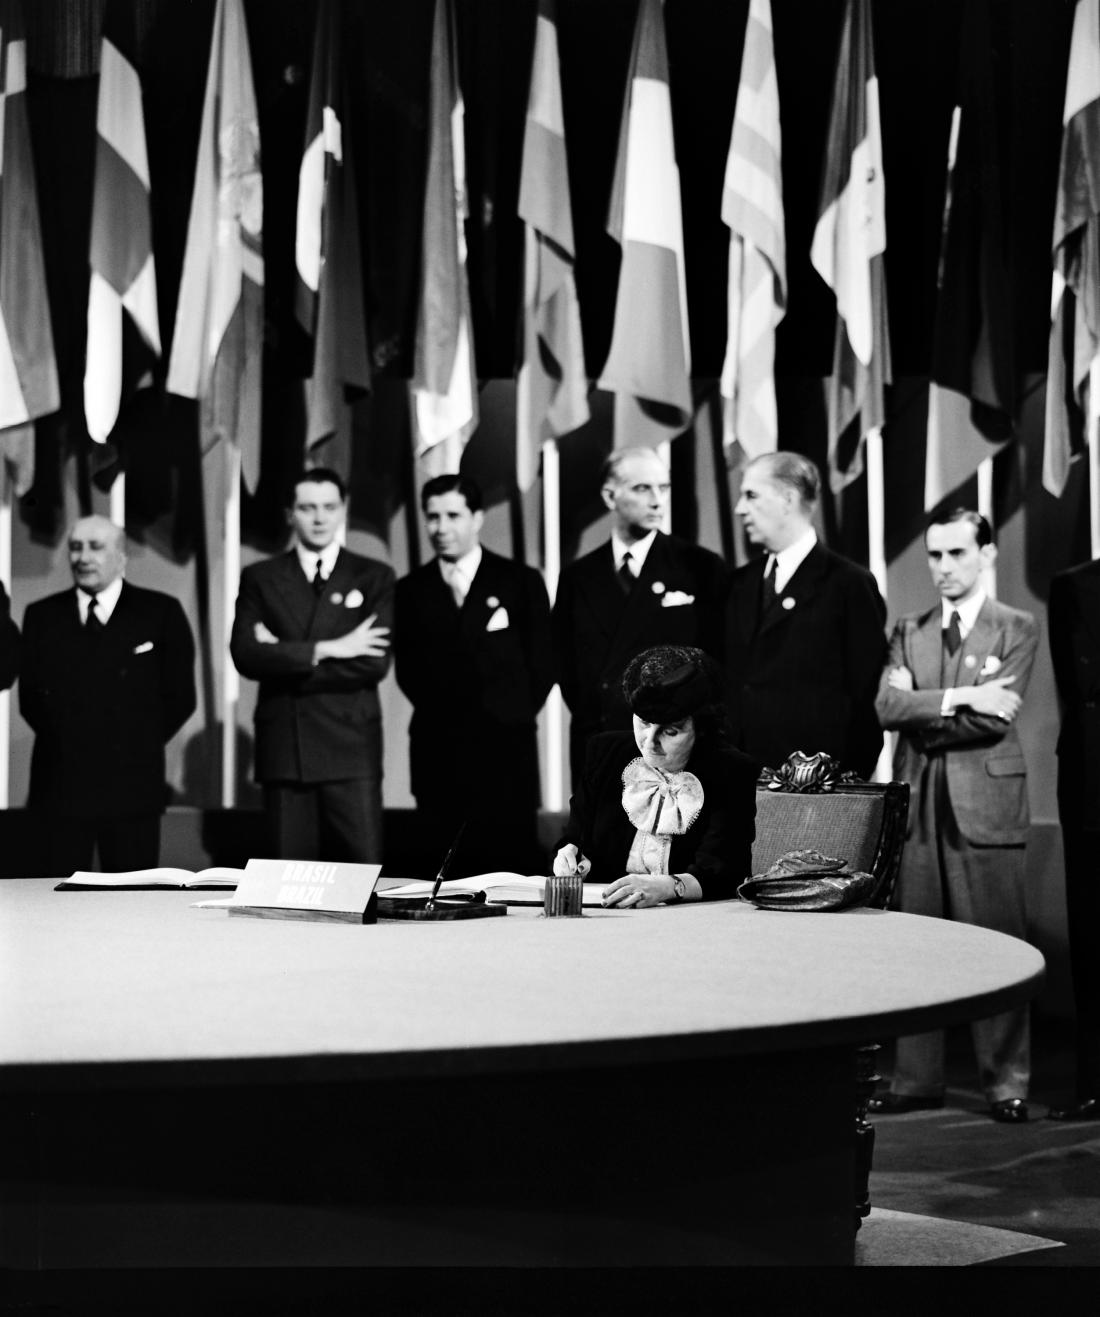 Dr. Bertha Lutz, National Museum, President of the Confederated Association of Women of Brazil, former Congresswoman and member of the delegation from Brazil, signing the UN Charter at a ceremony held at the Veterans' War Memorial Building on 26 June 1945.